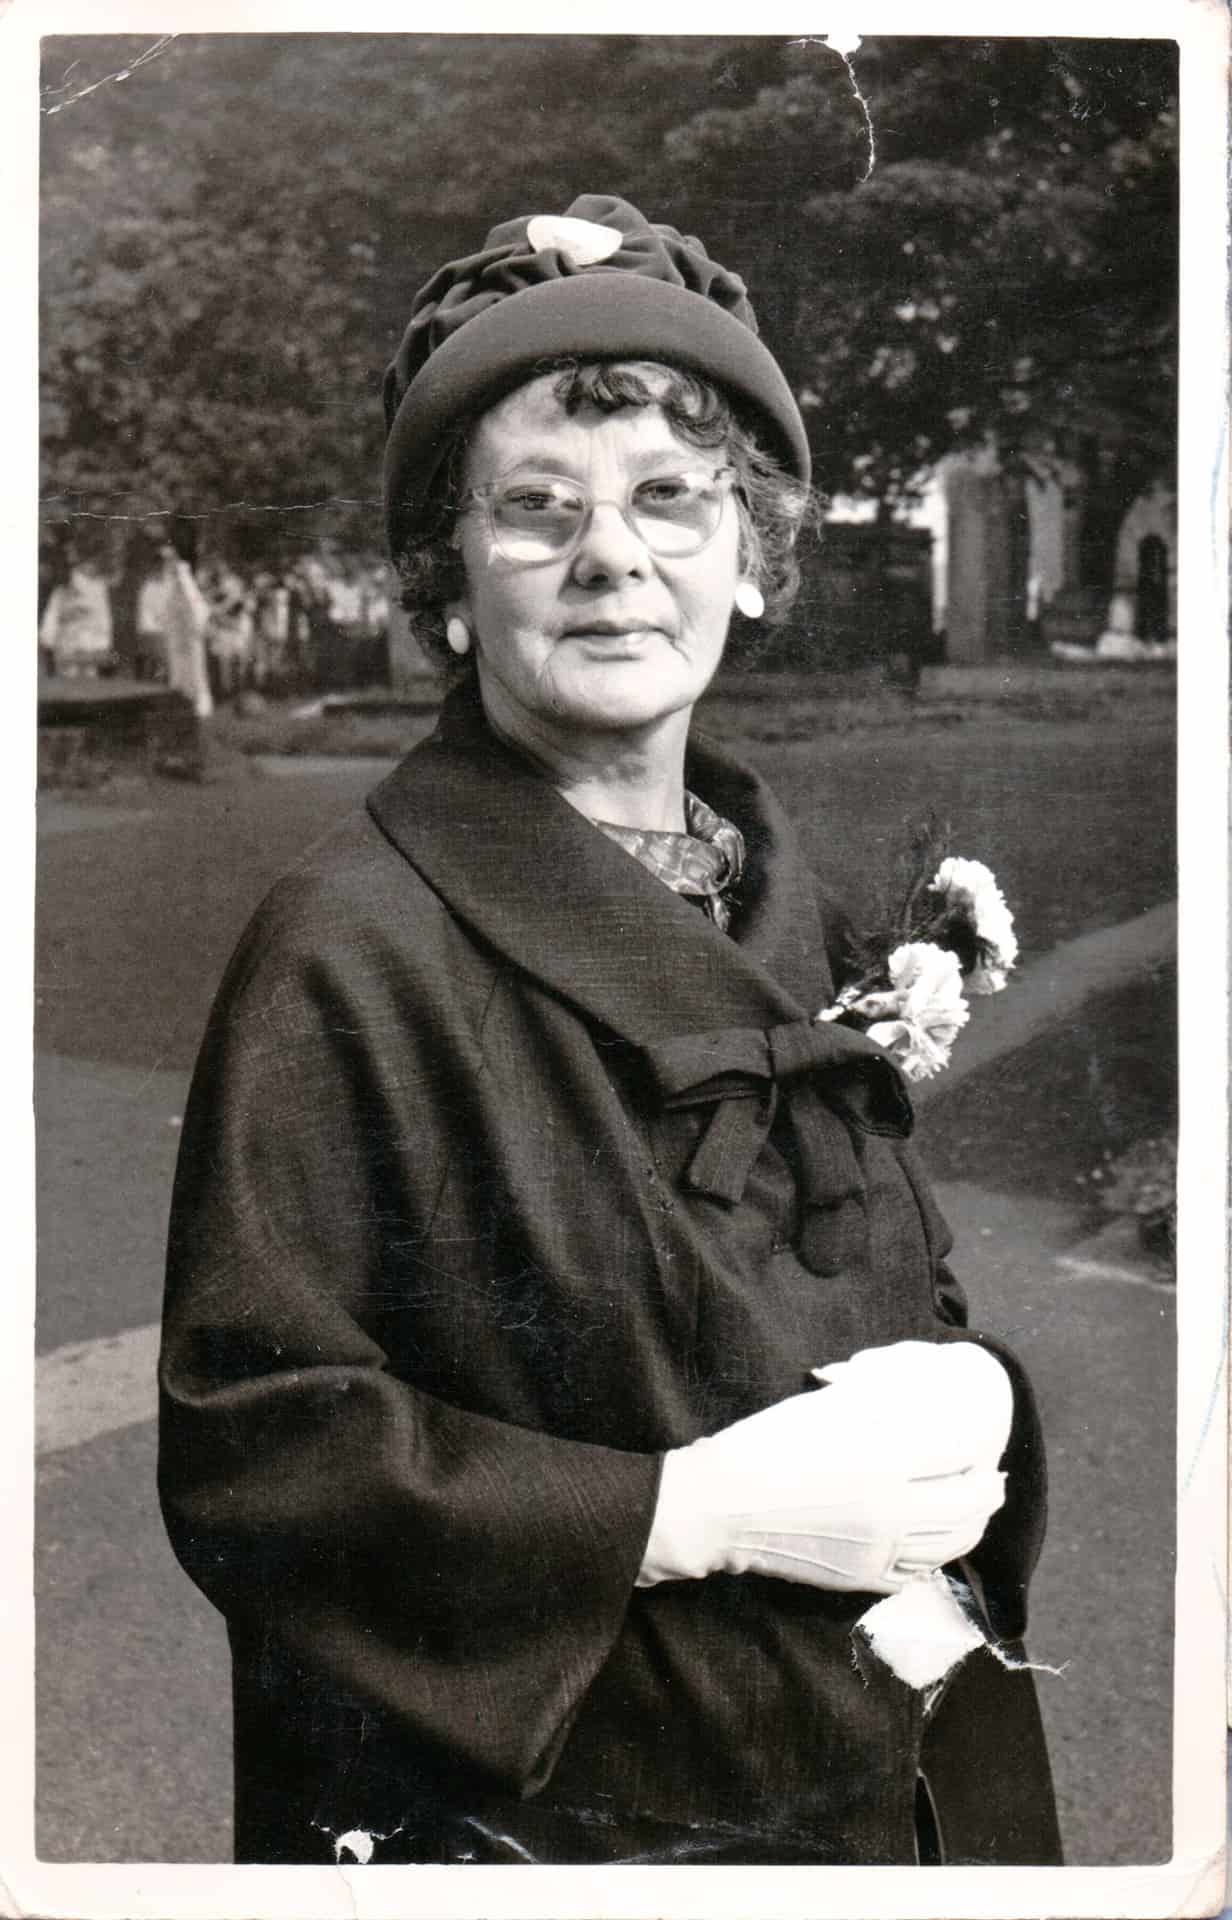 I met my nan, but I was a baby. don't remember meeting her because she passed away when I was one. I don't think I was even one. I was one in the March and she died the Boxing Day before that. She was a dressmaker helping her brother George and her sister Mary.